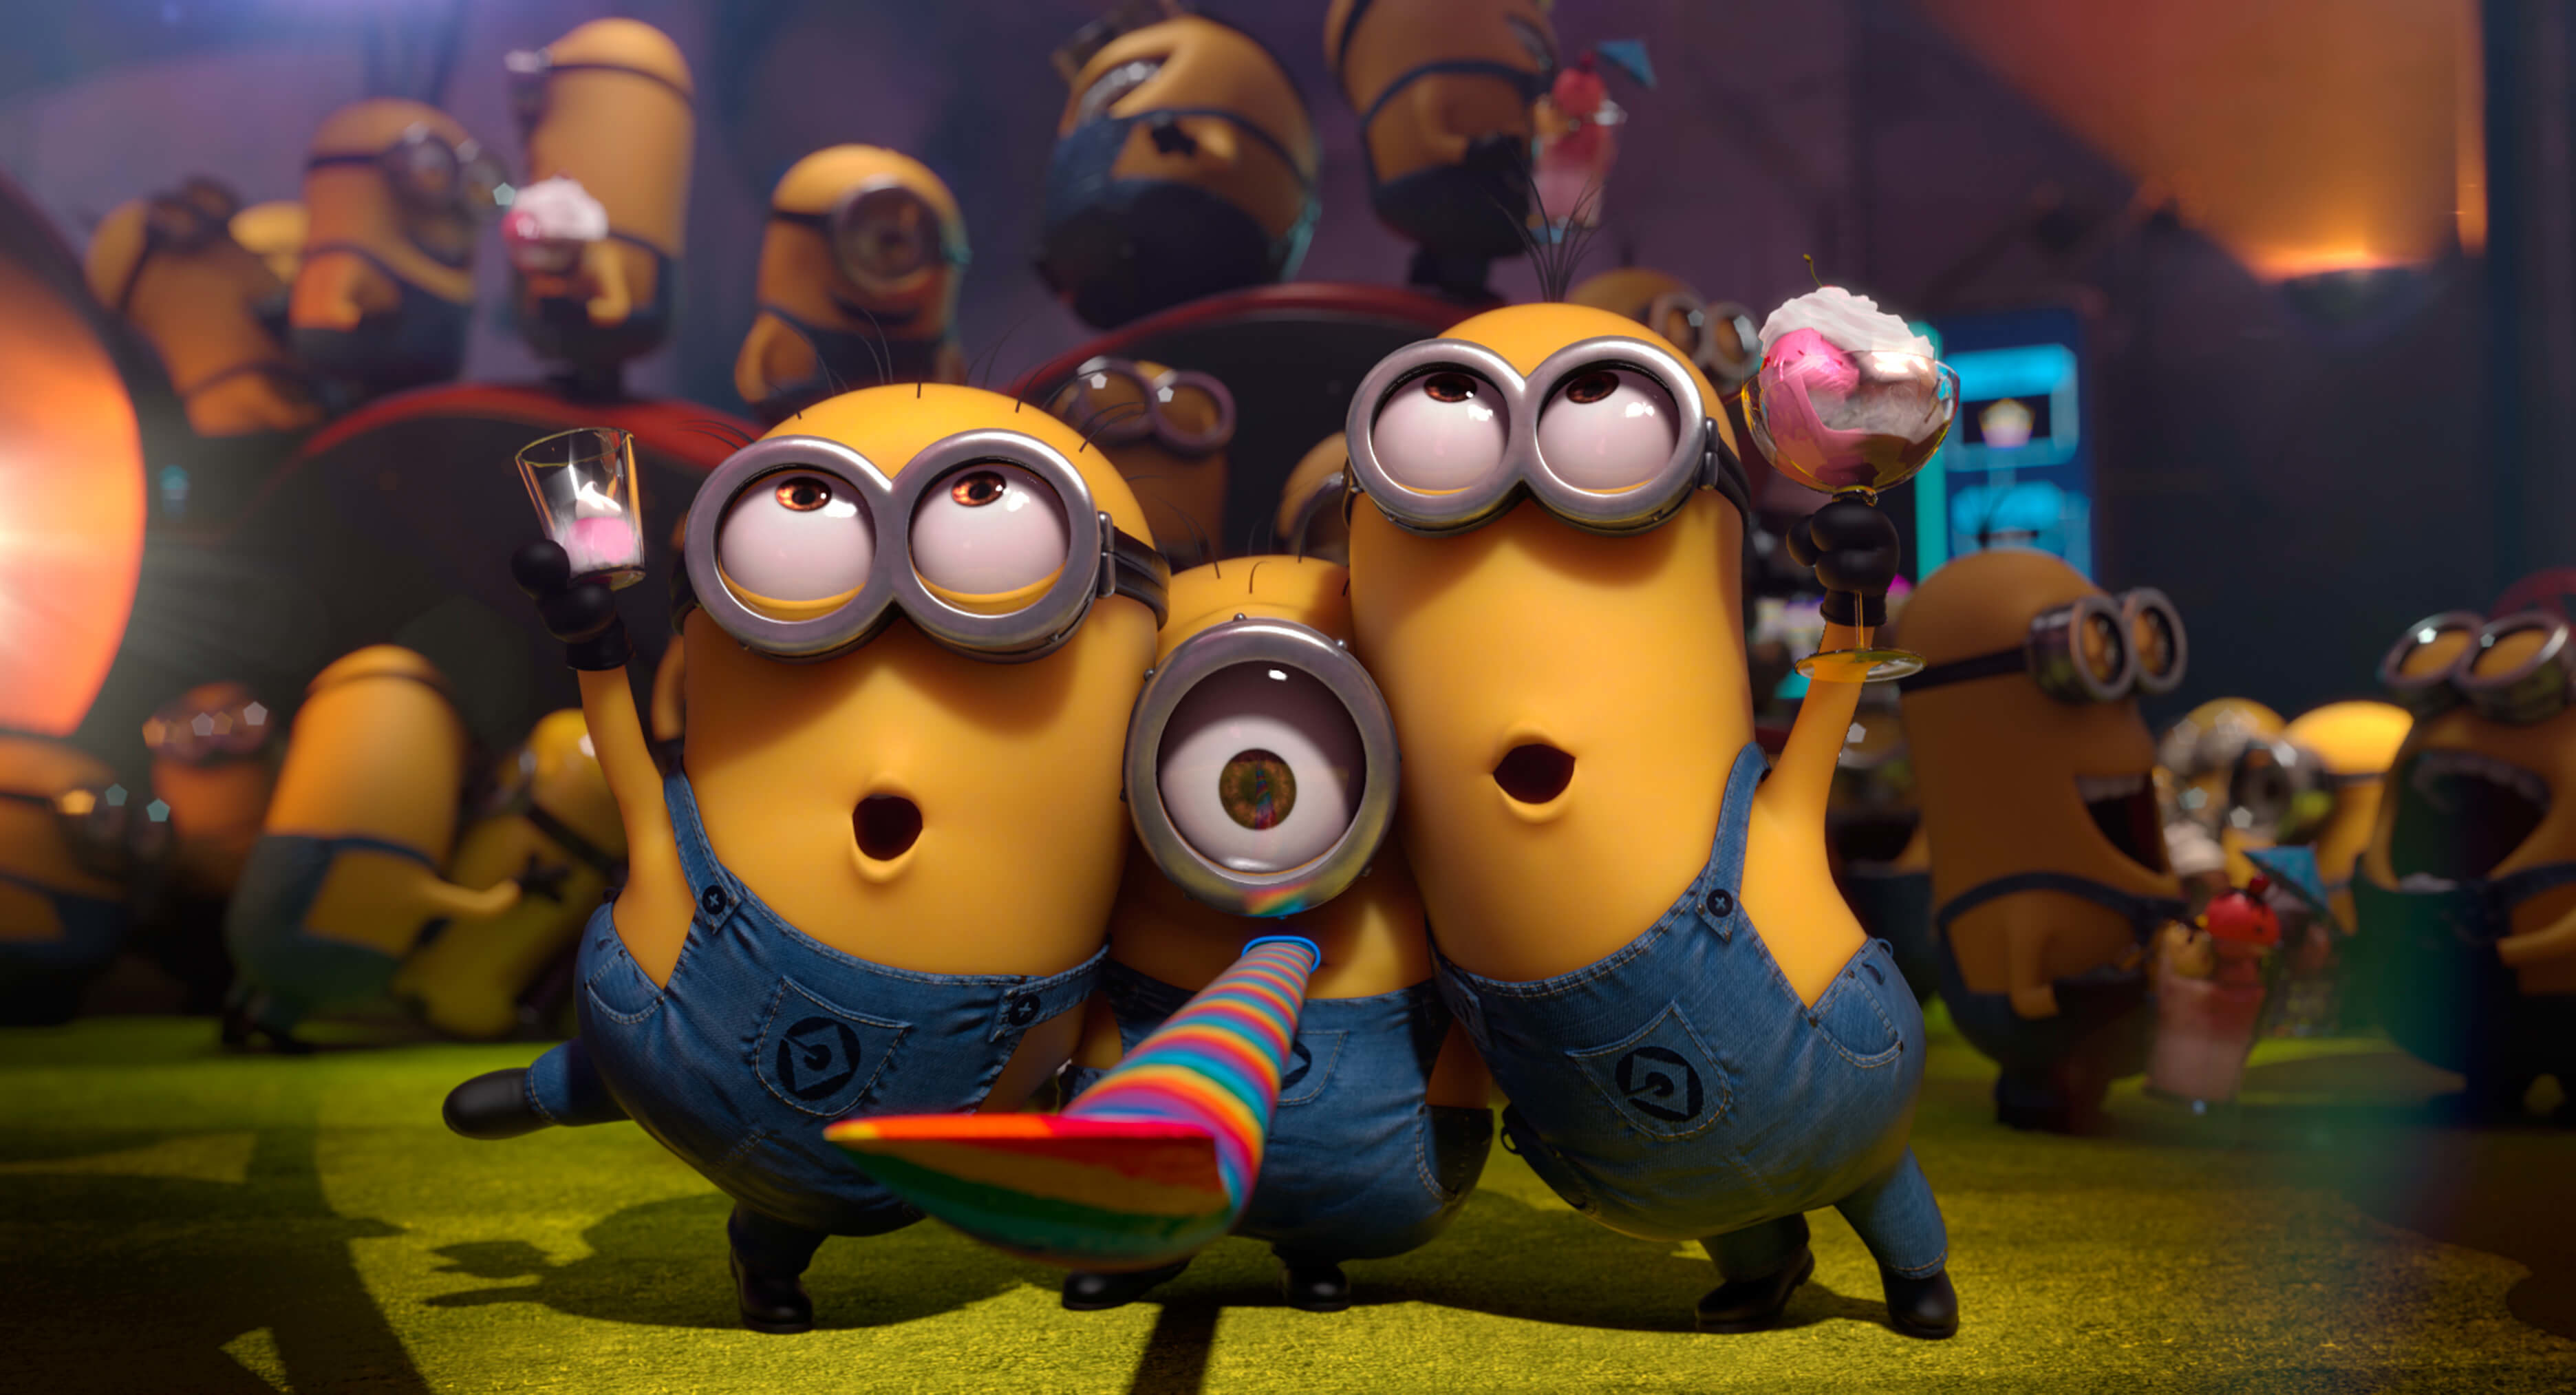 34 Bob (Minions) HD Wallpapers | Backgrounds – Wallpaper Abyss